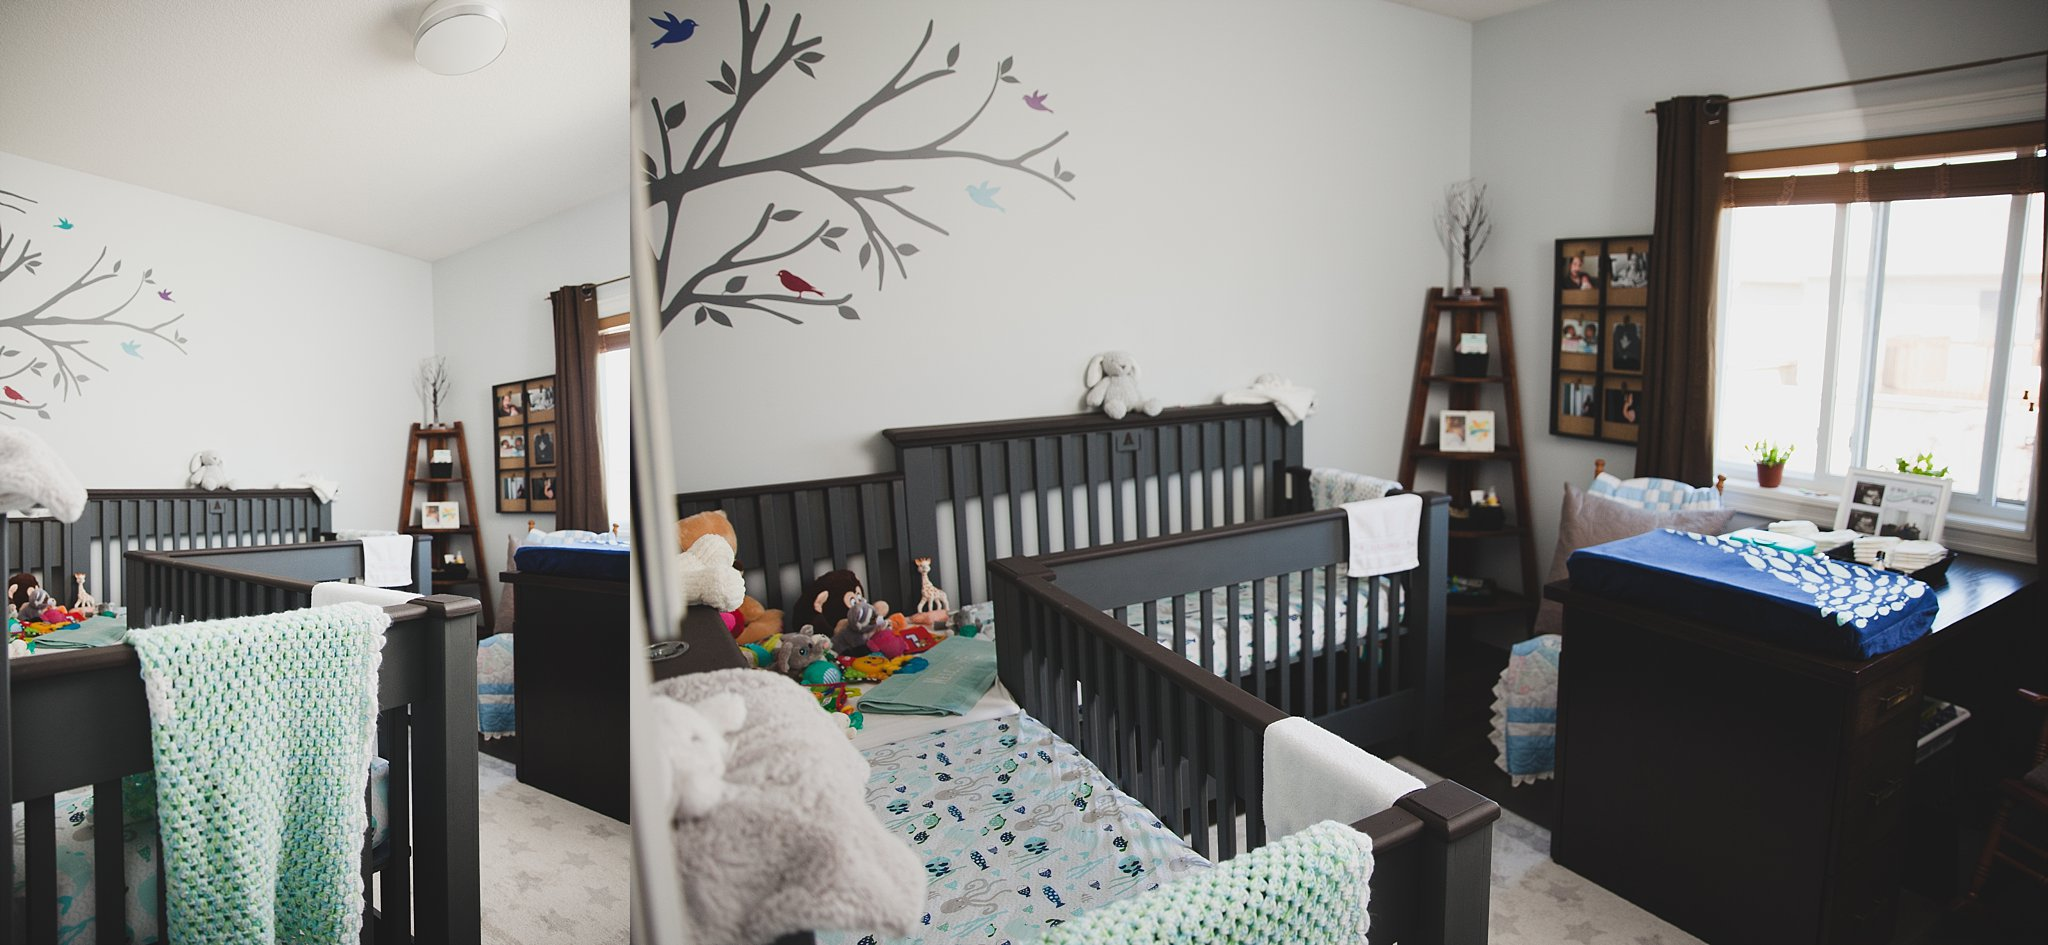 Double crib for twin babies.